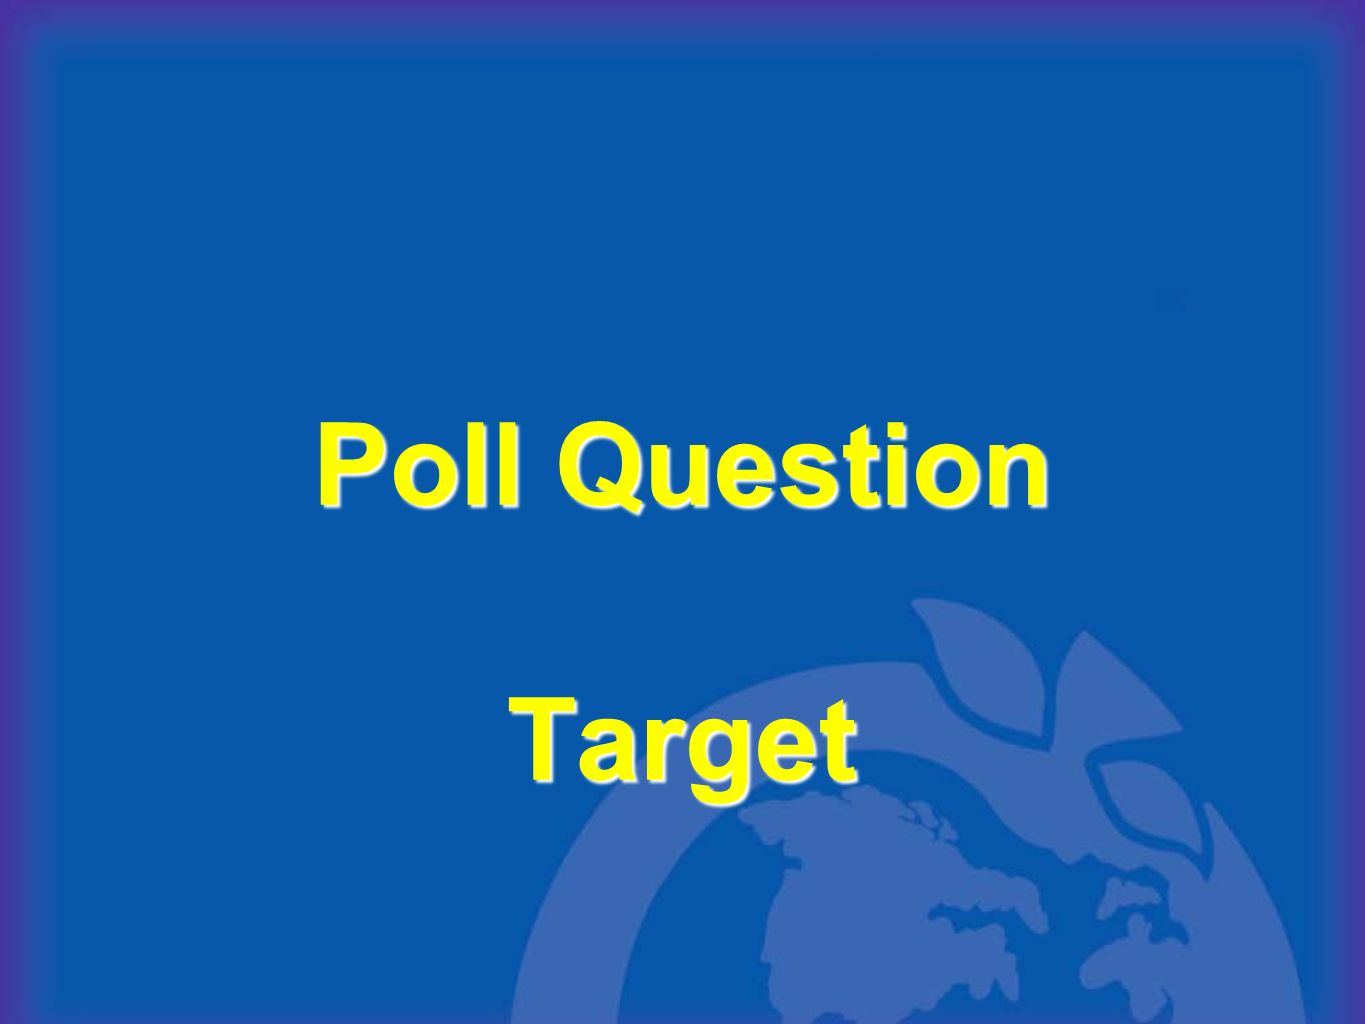 Poll Question Target